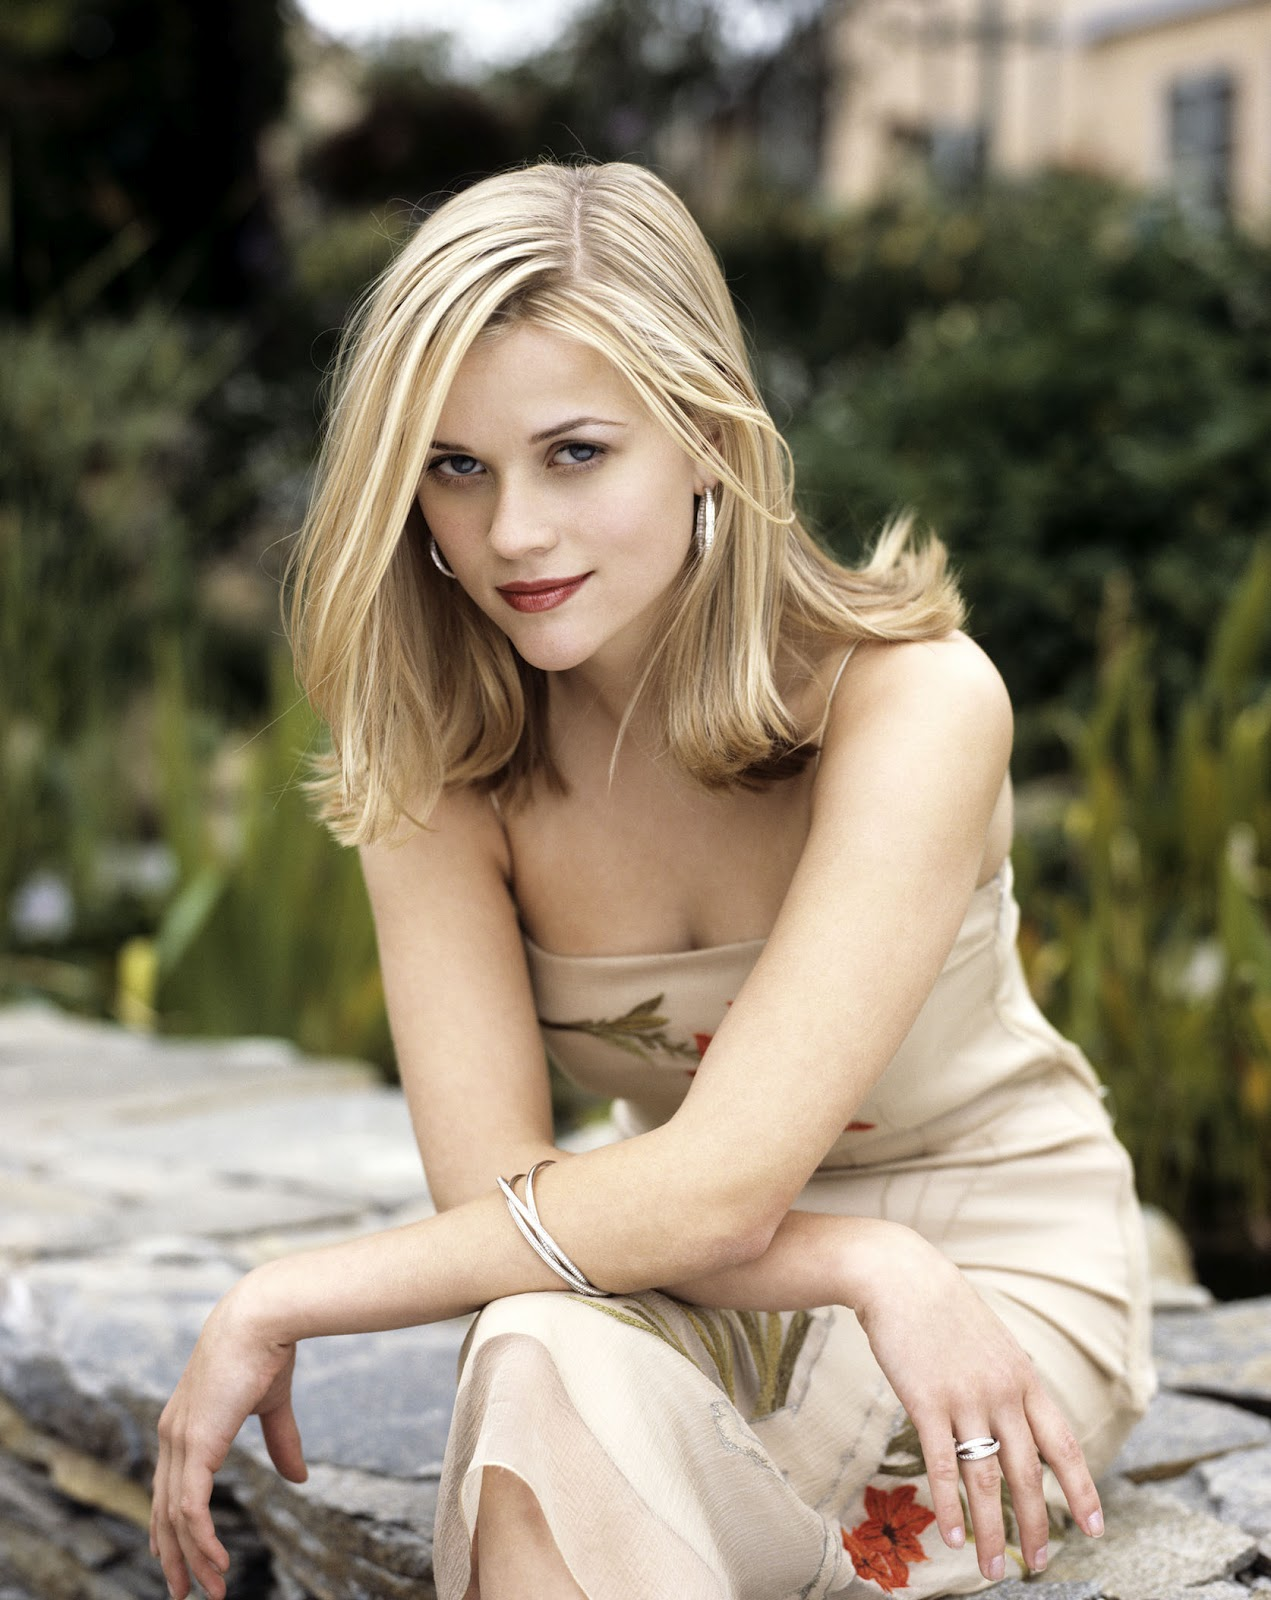 http://4.bp.blogspot.com/-EJD4ZV6_TNY/T_nbloy5E3I/AAAAAAAABVE/YVwK6SD6eUM/s1600/Reese-Witherspoon-HQ-actresses.jpg